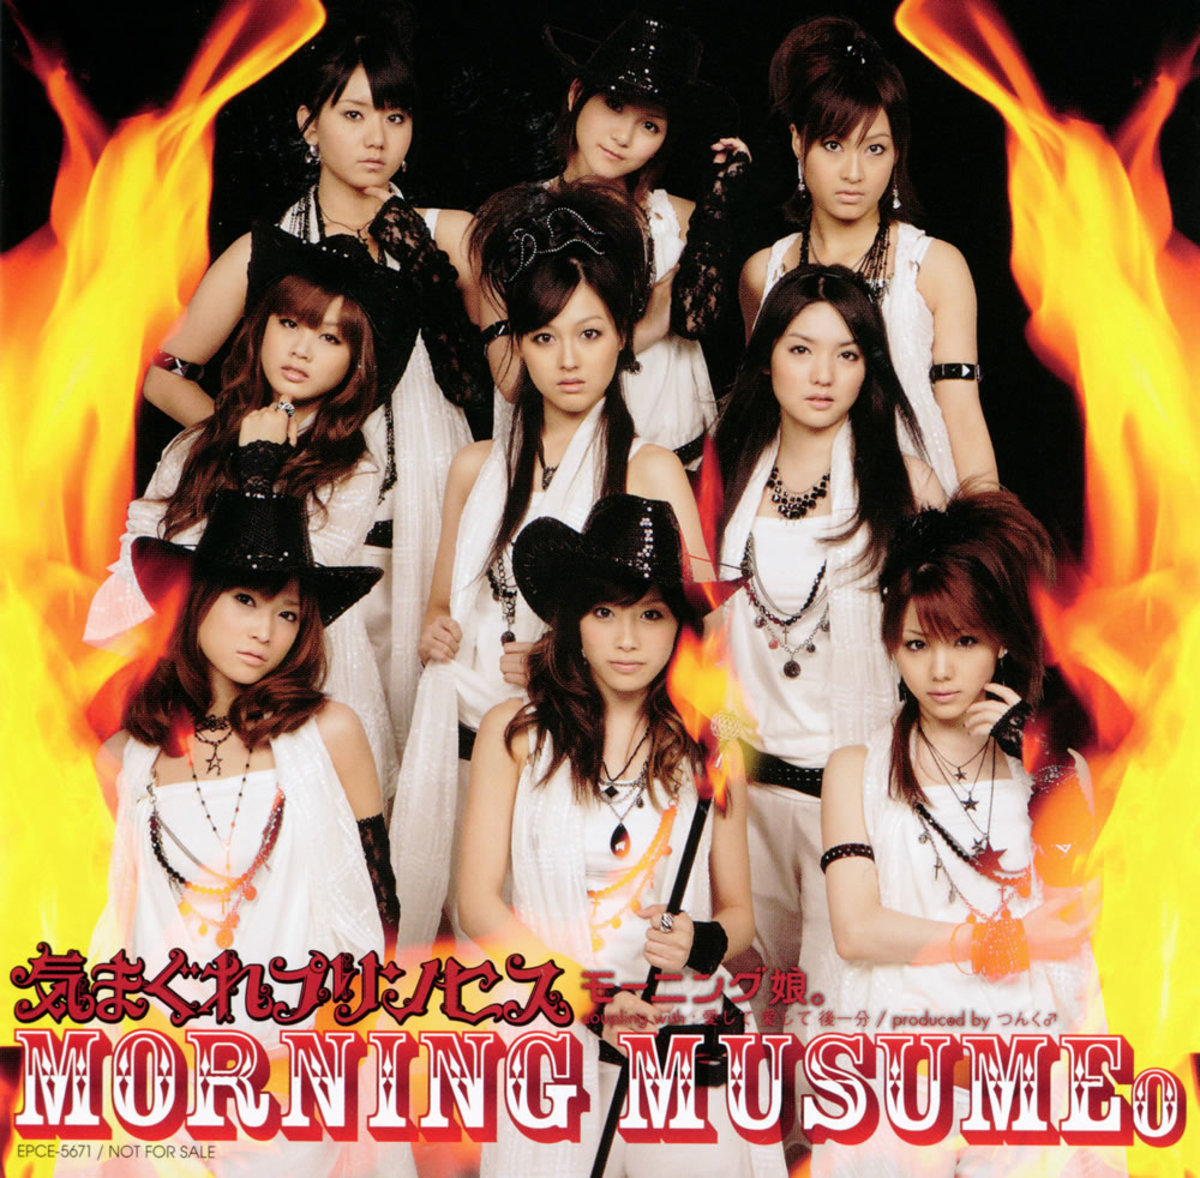 Interesting Facts about Morning Musume's 41st single Kimagure Princess